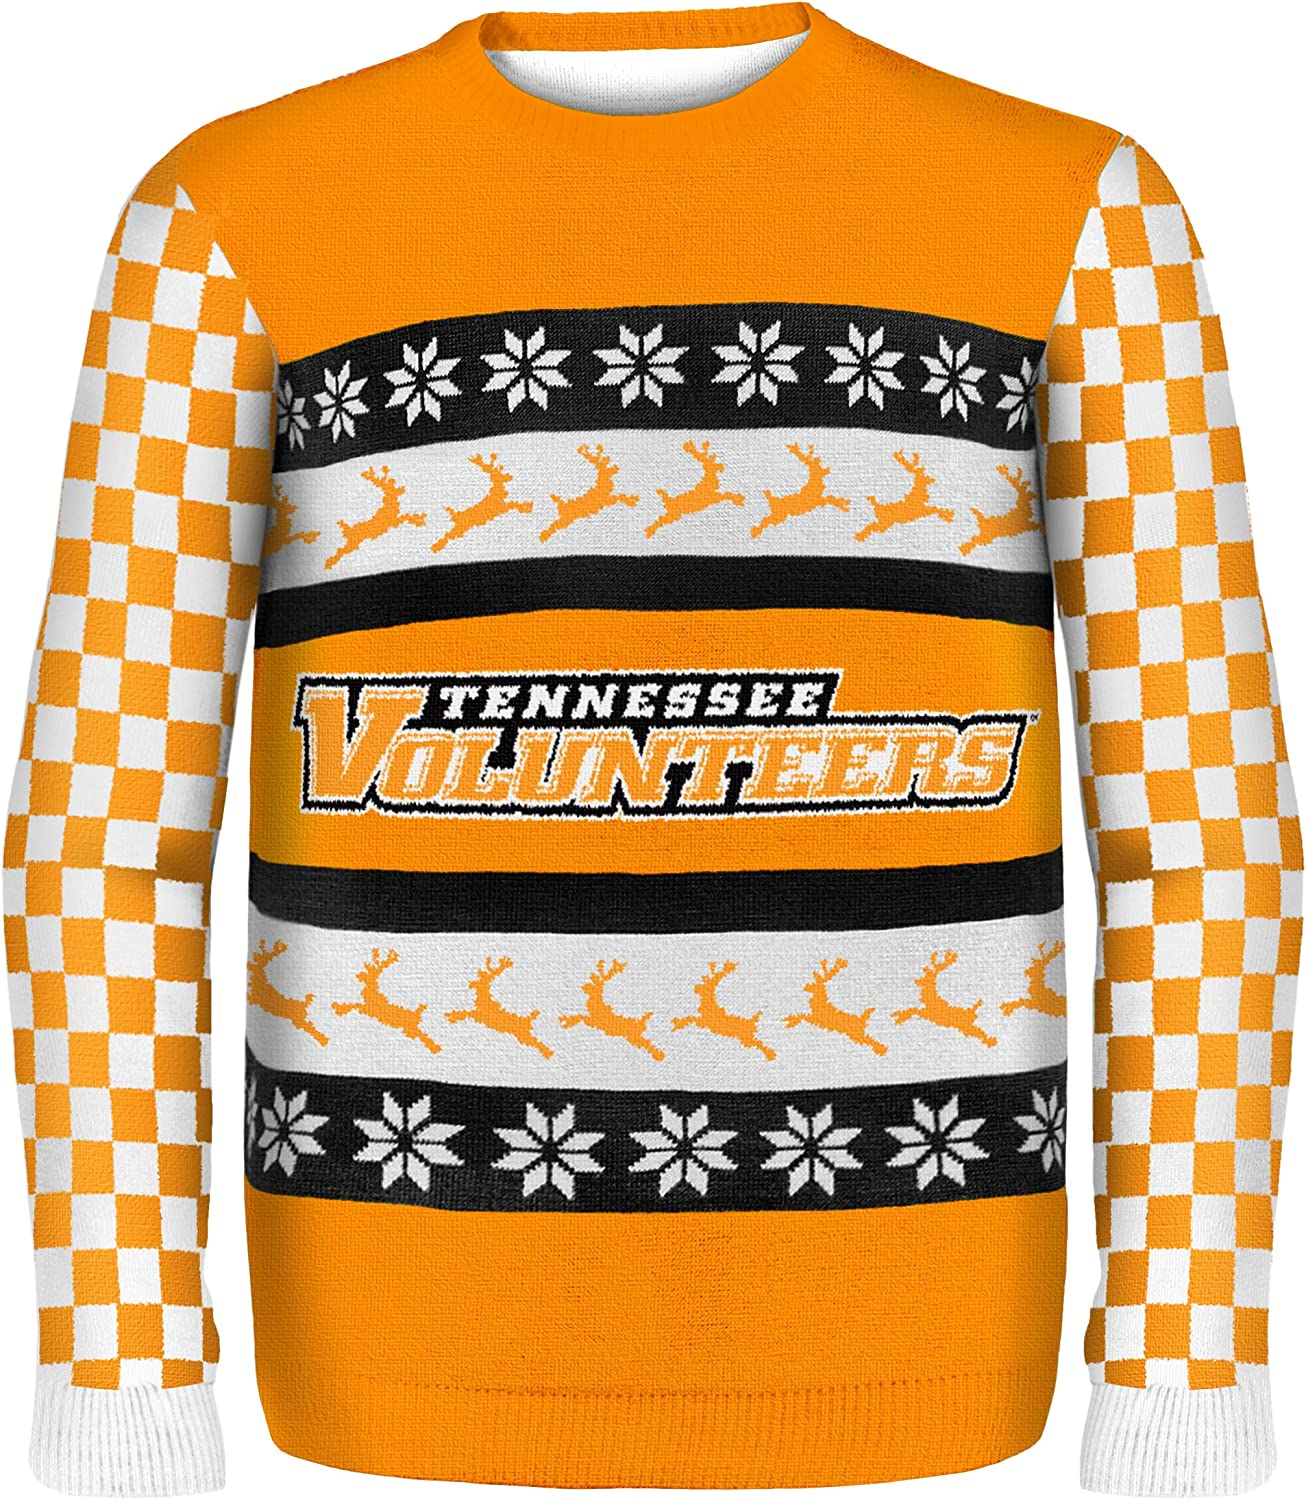 Online limited product FOCO NCAA Spasm price One Too Many Sweater Ugly